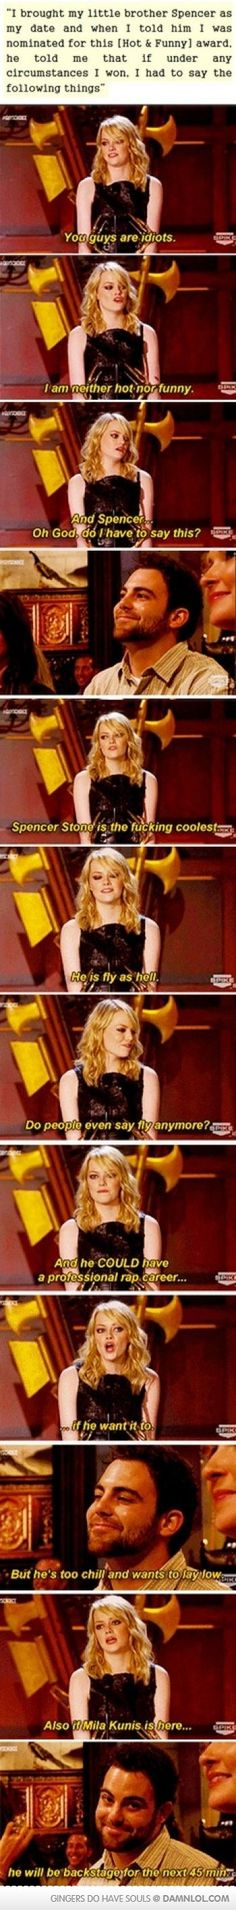 Emma Stone Is An Awesome Older Sister aahahah